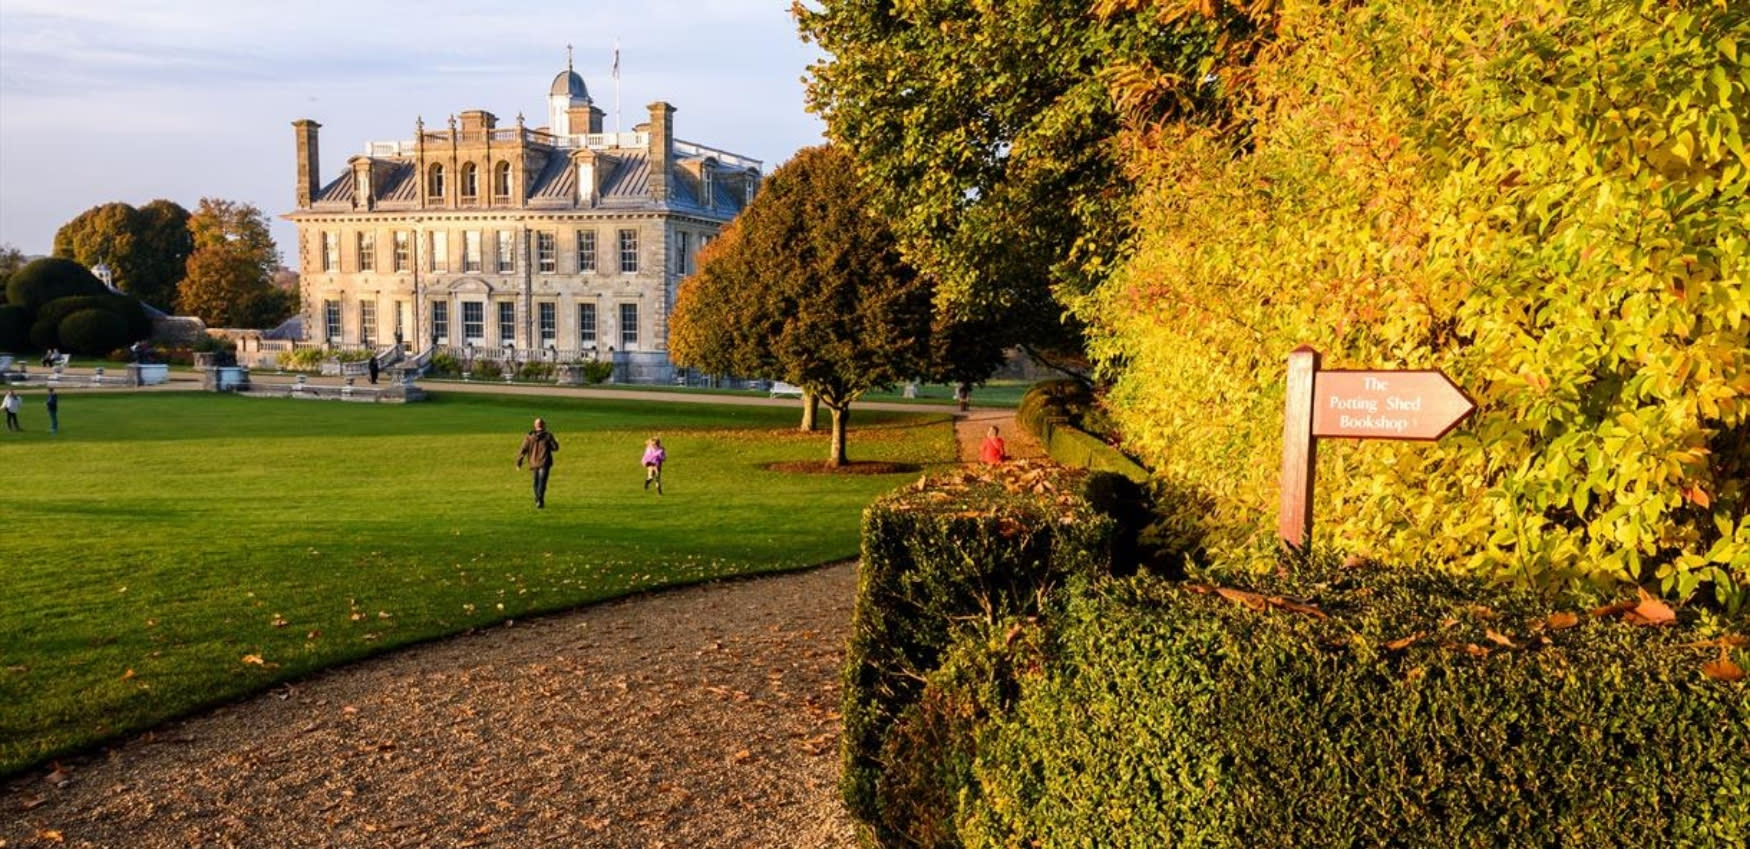 Kingston Lacy house and gardens in autumn